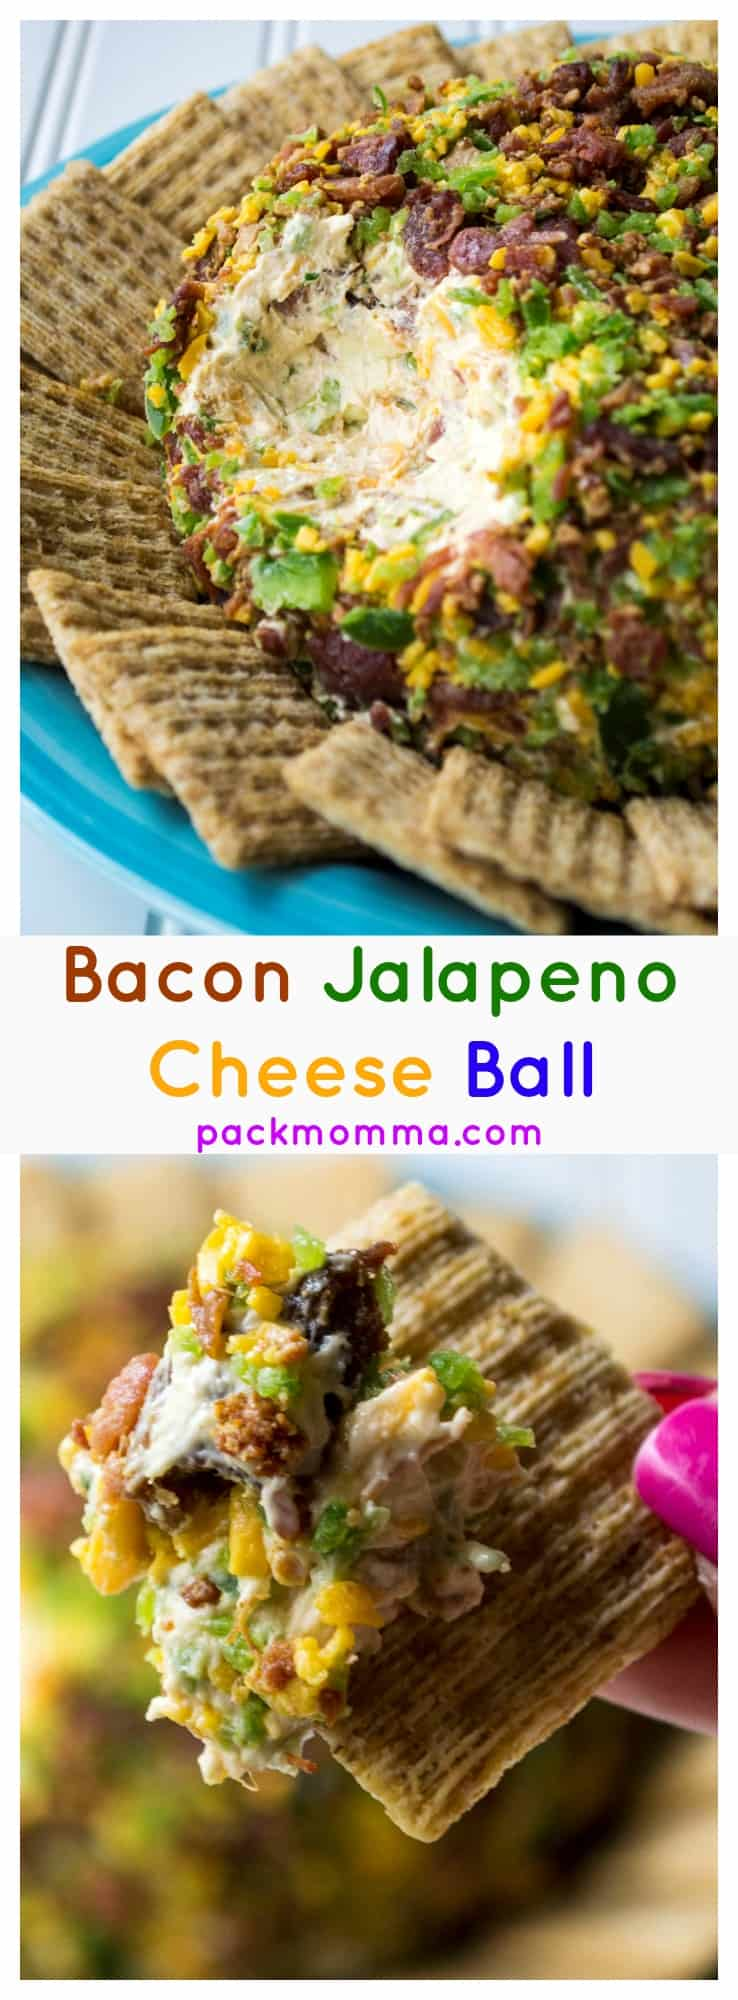 Bacon Jalapeno Cheese Ball | This Bacon Jalapeno Cheese Ball recipe is easy to make and always a party favorite. Bacon, jalapeno and cheese combined to make the perfect party food. | Pack Momma | https://www.packmomma.com